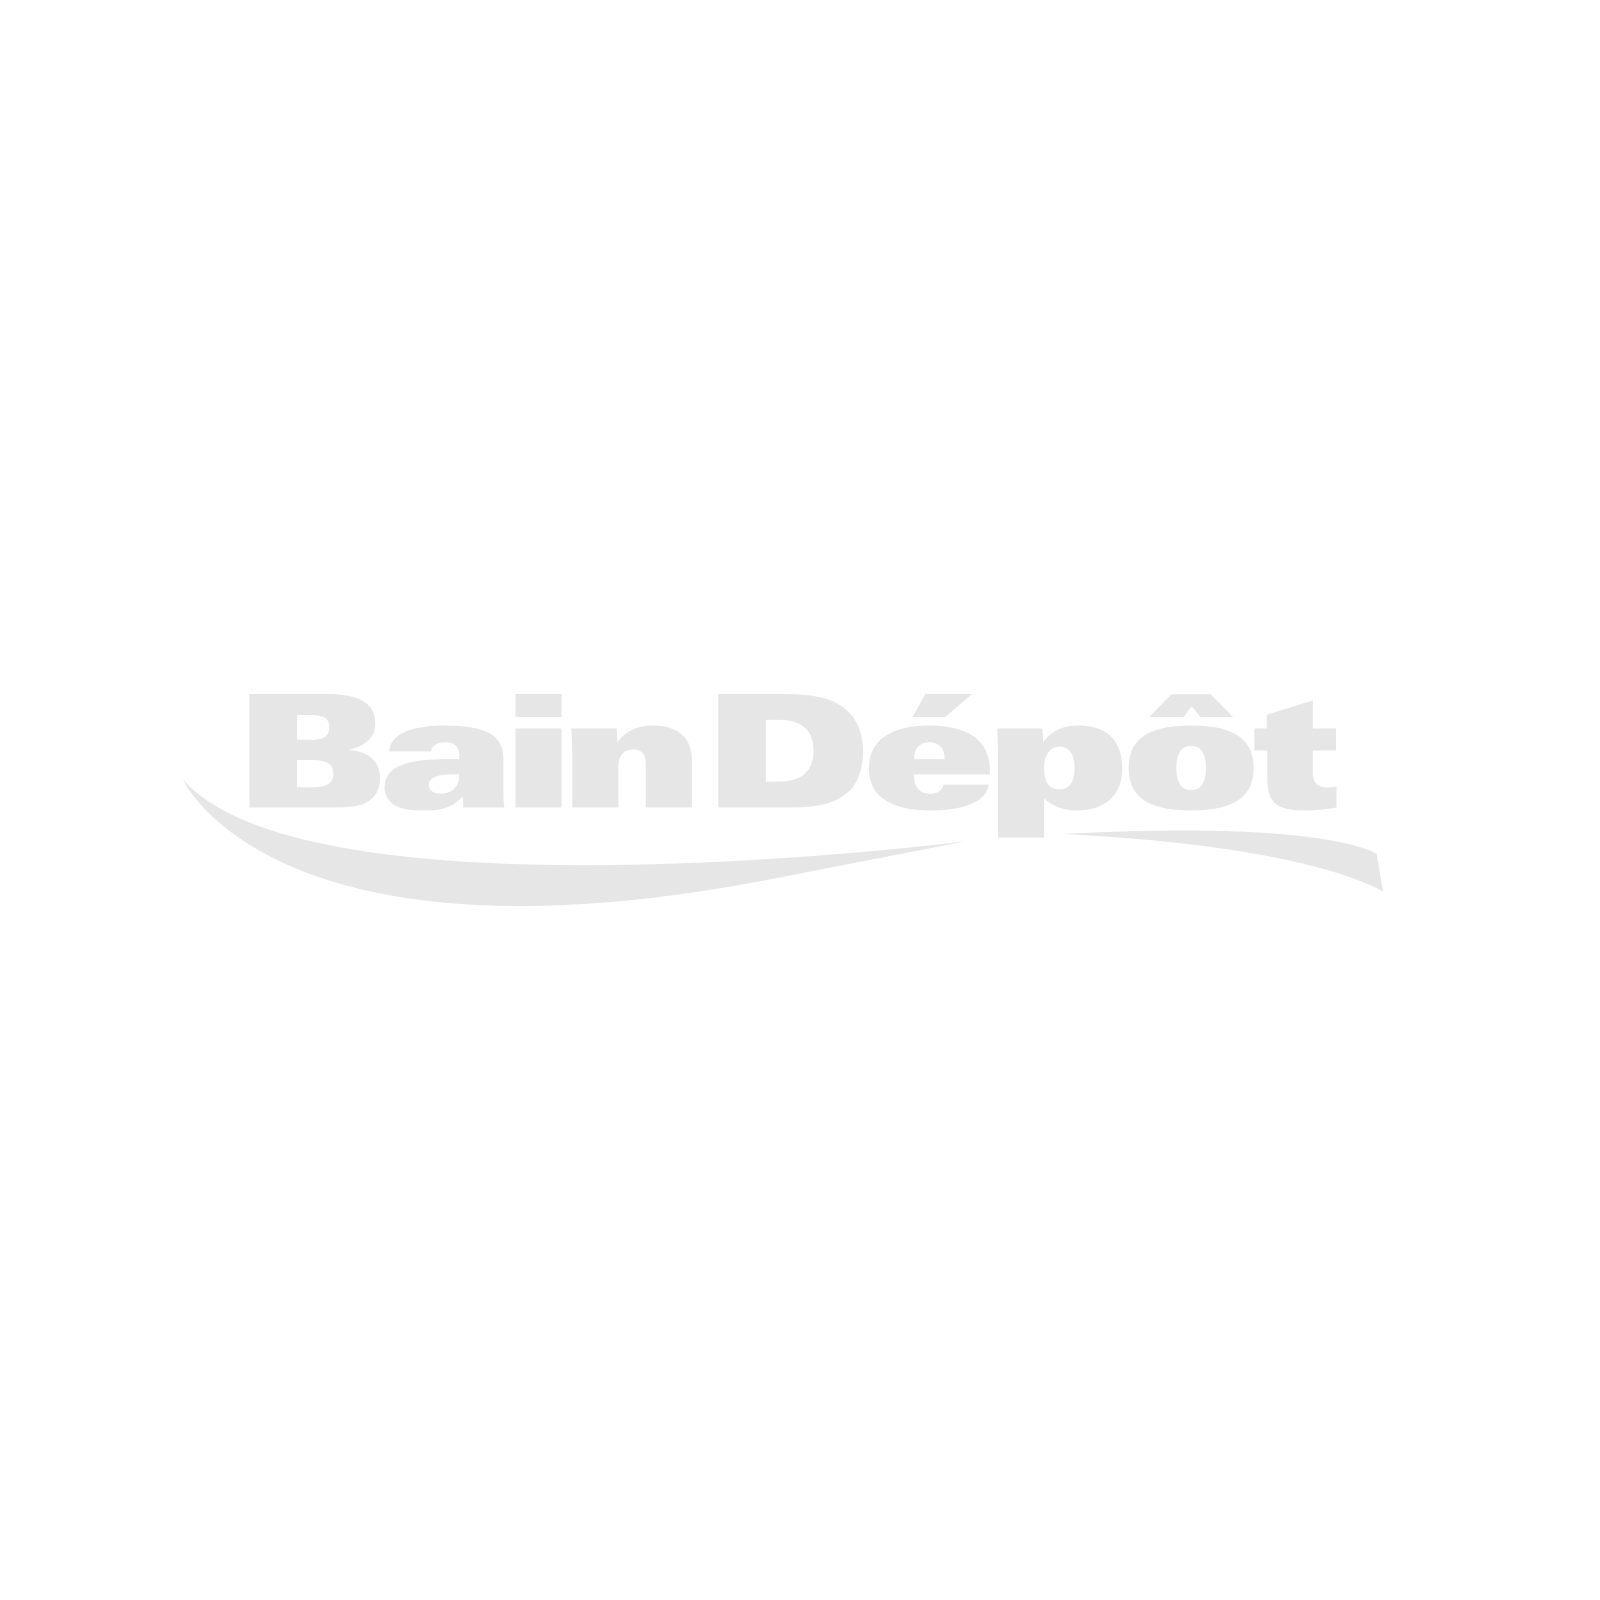 "Modern chrome 4"" bathroom sink faucet with flat handles"